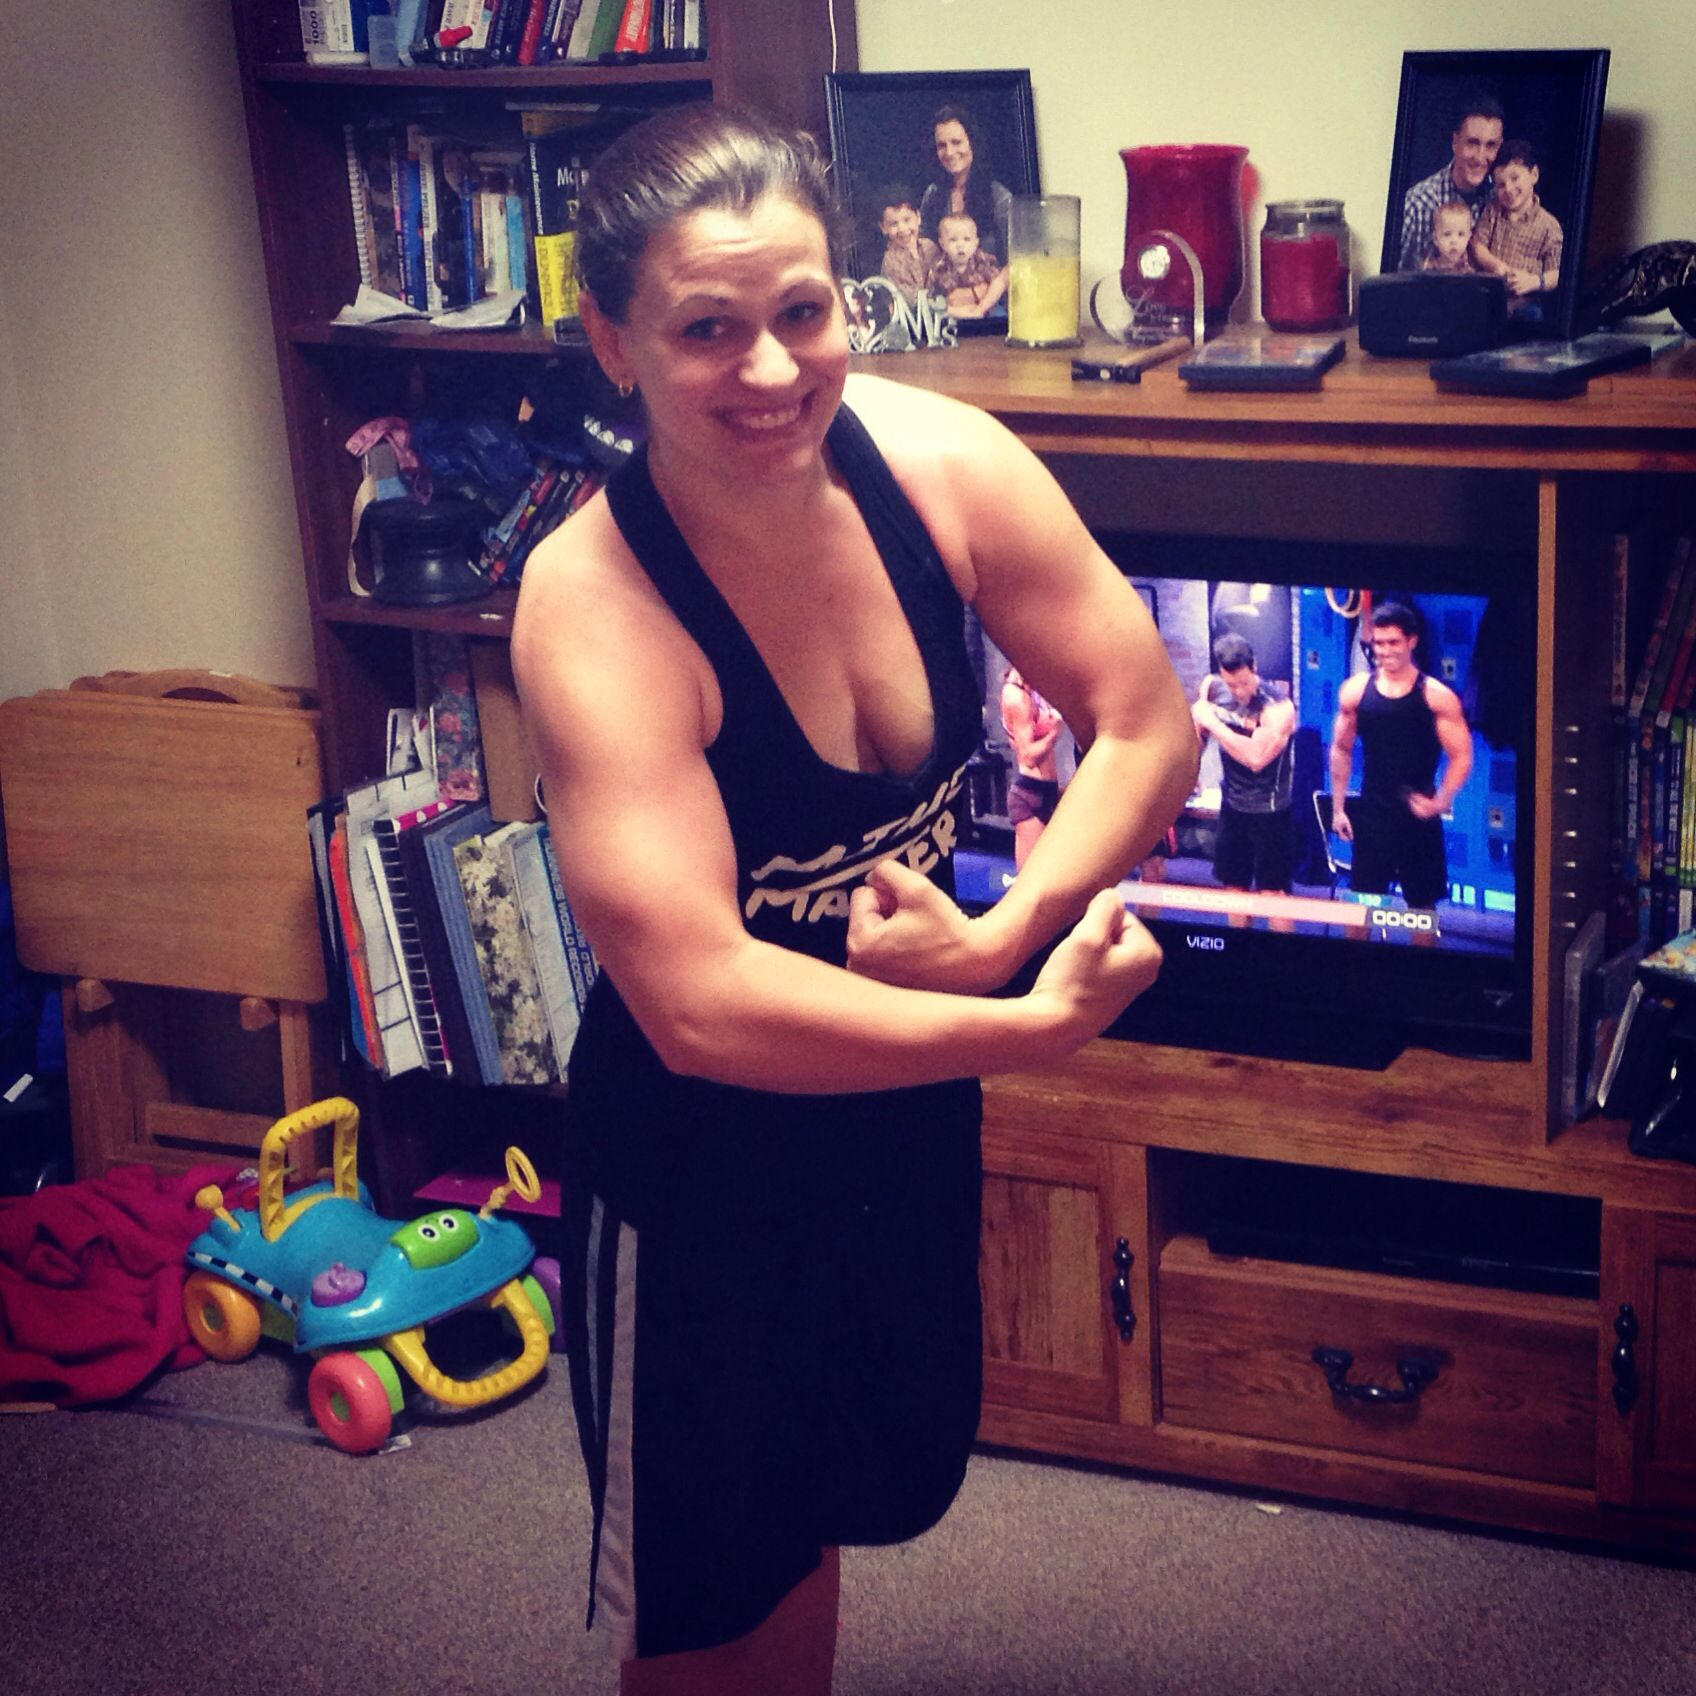 Completed The Challenge Tonight On P90x3 Week Two